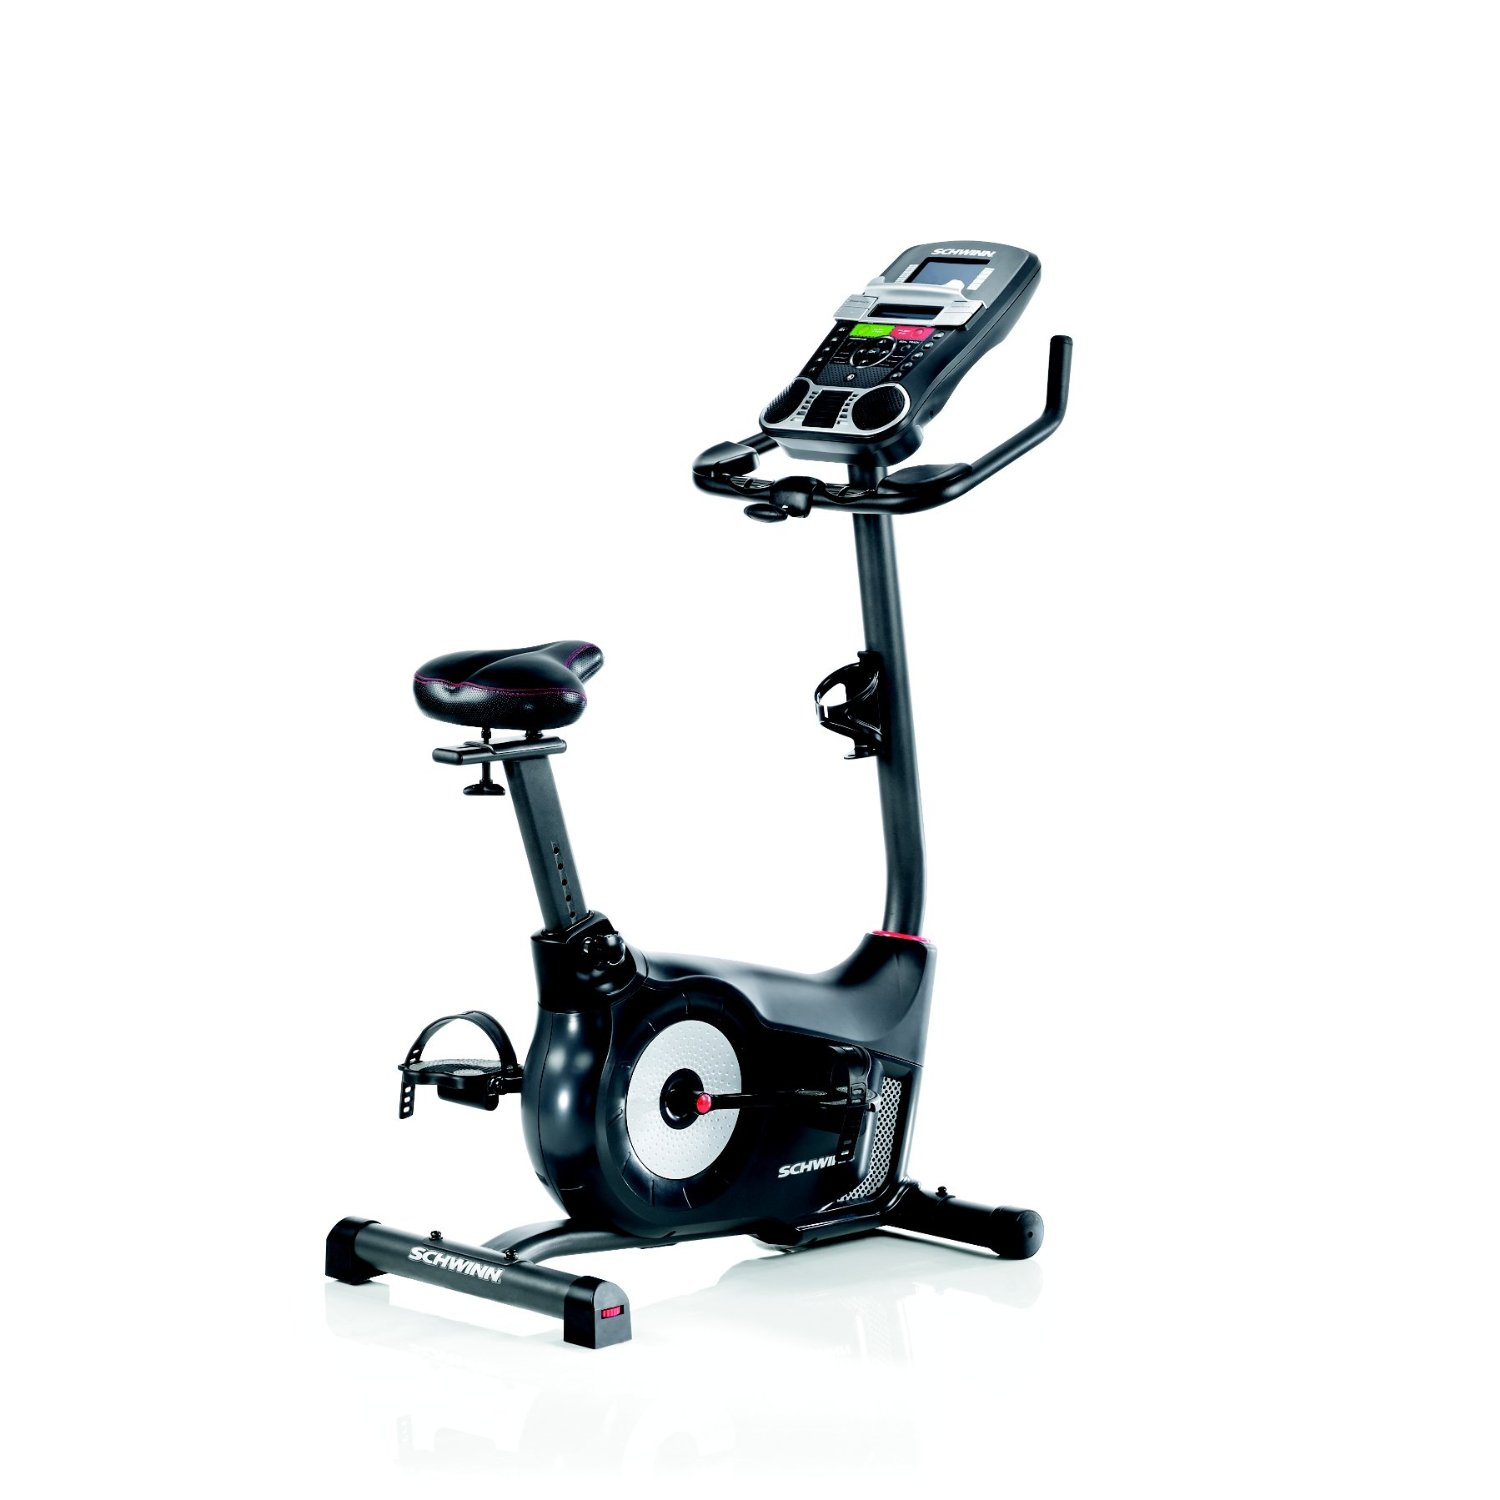 Best Exercise Bike Seat For The Schwinn 170 Cycling Manual Guide